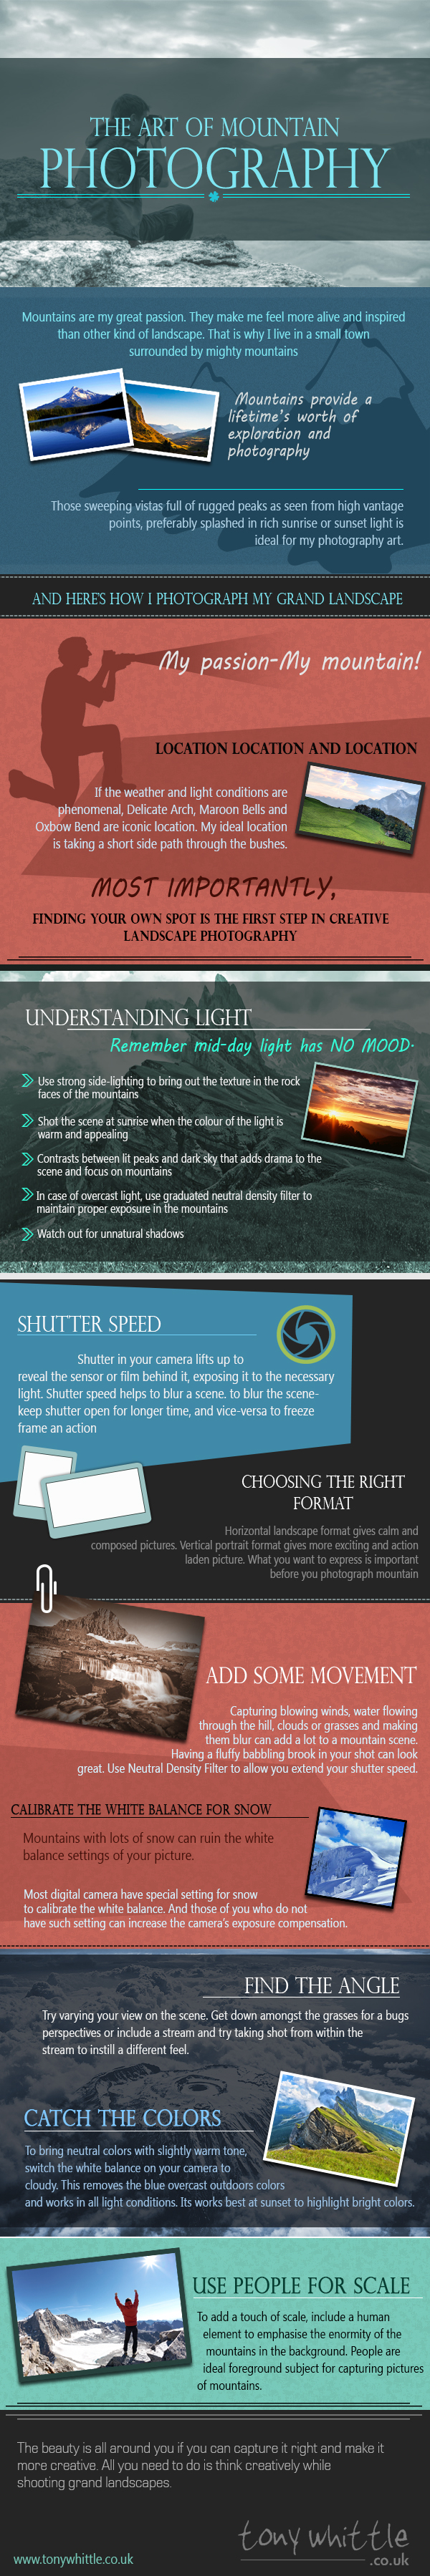 The Art of Mountain Photography_tonywhittle_Infographic_2nd july,2014